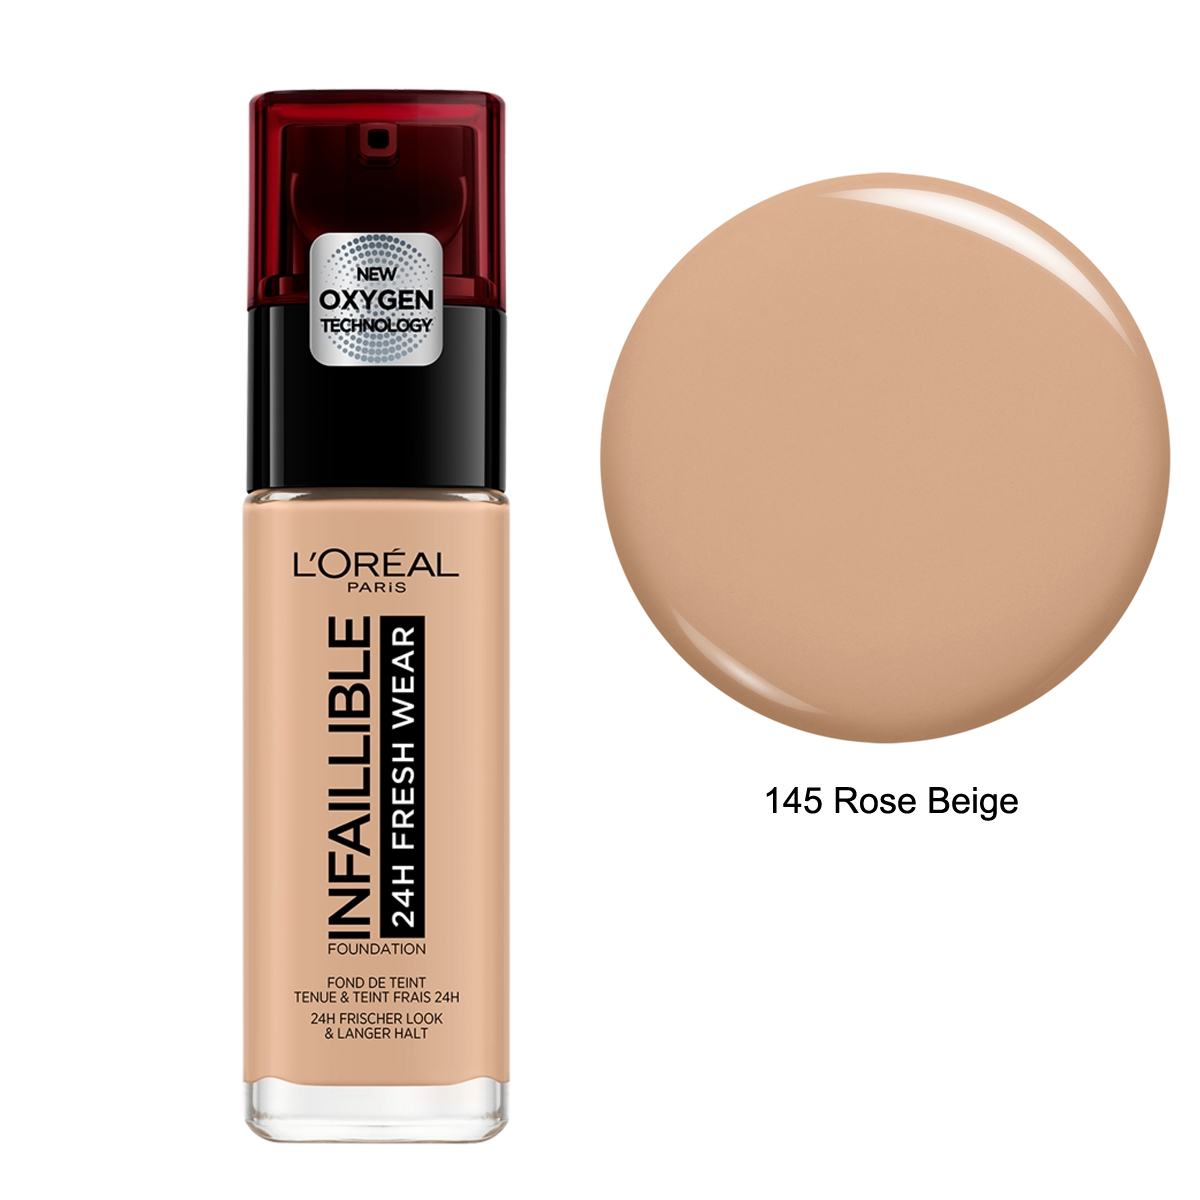 L'Oréal Infaillible 24H Fresh Wear Foundation Uzun Süre Kalıcı Fondöten 145 Rose Beige